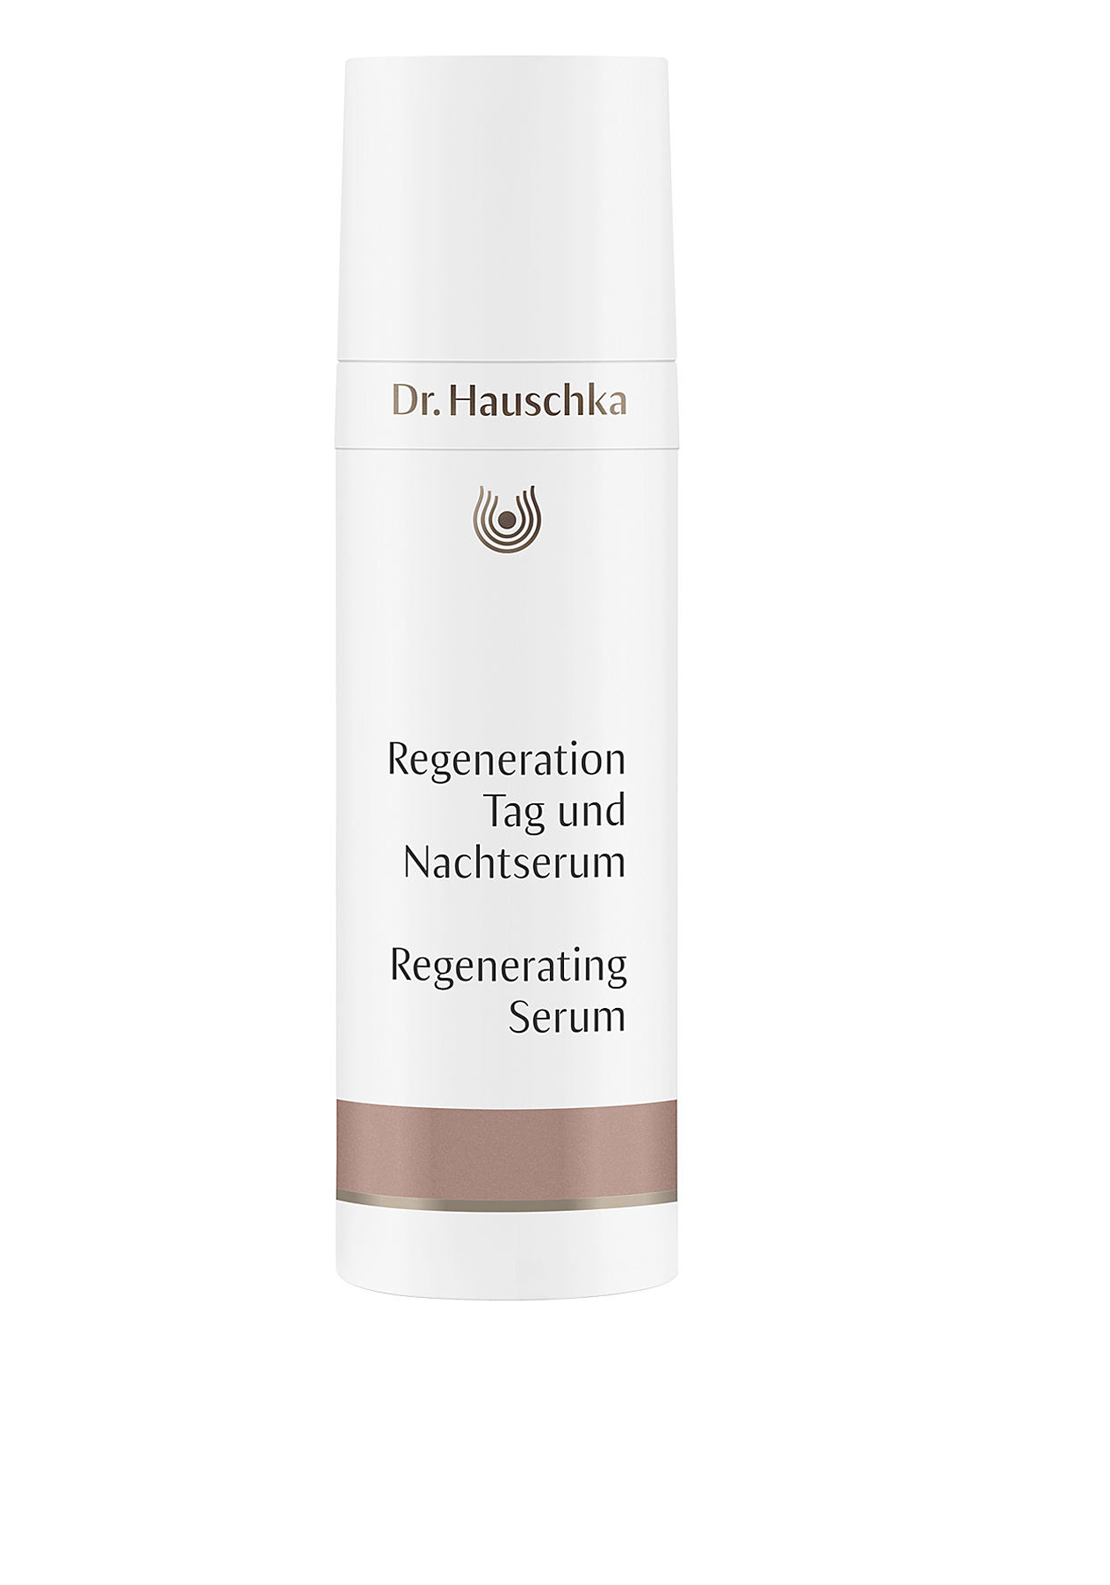 Dr. Hauschka Regenerating Serum, 30ml